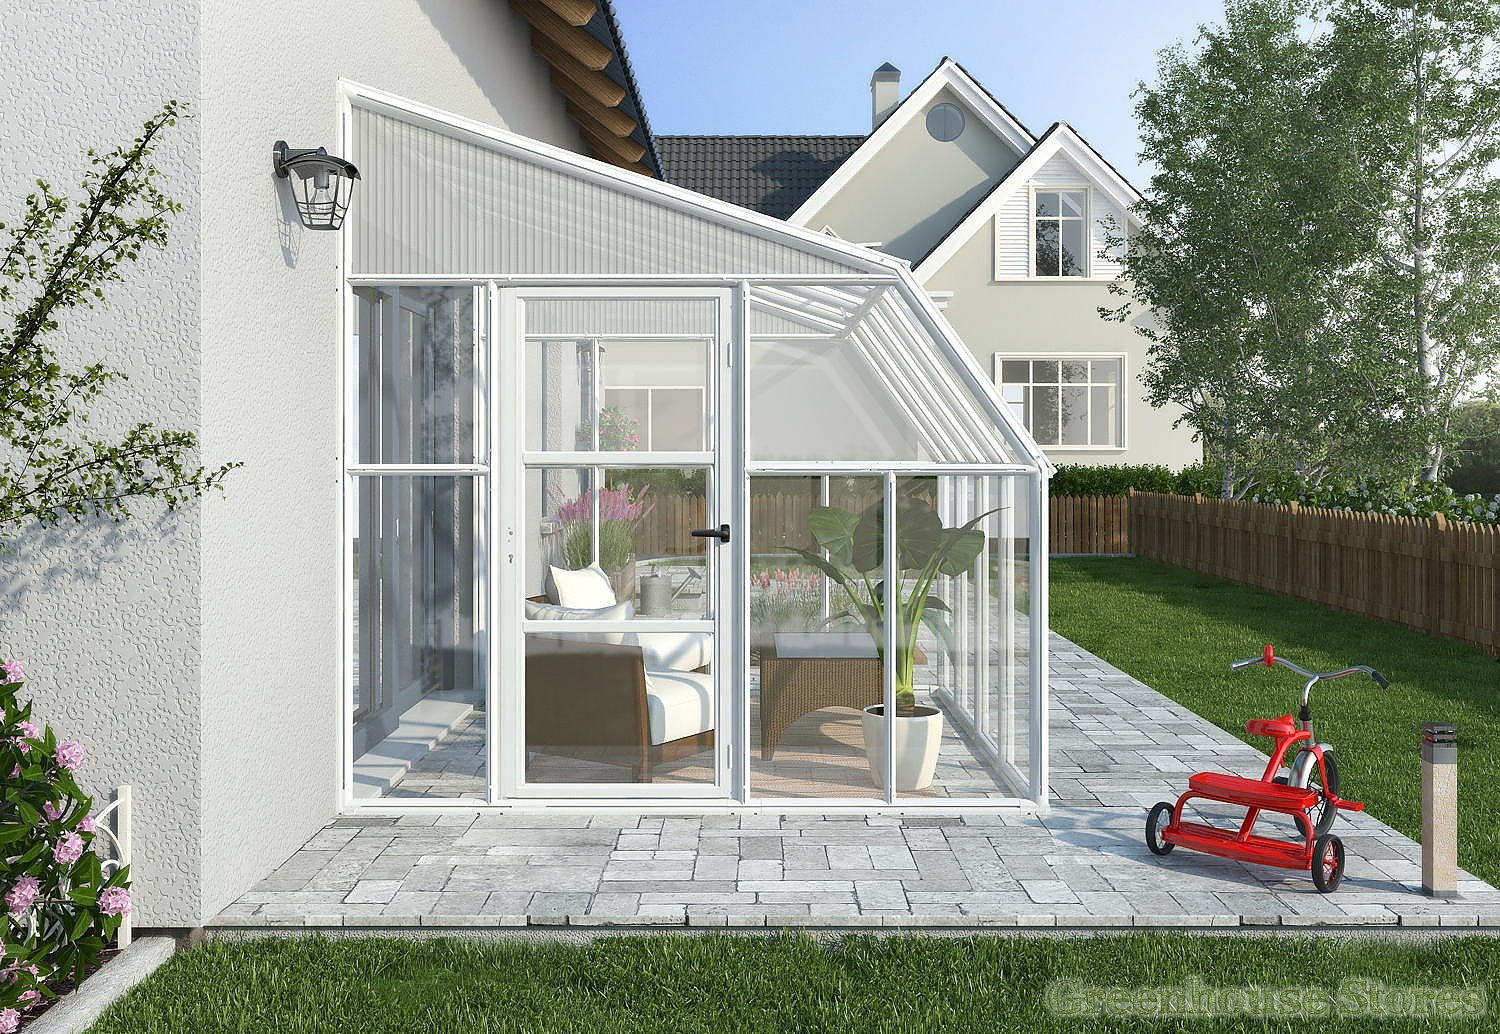 Rion sun room 8x10 lean to greenhouse polycarbonate for Sunroom sizes